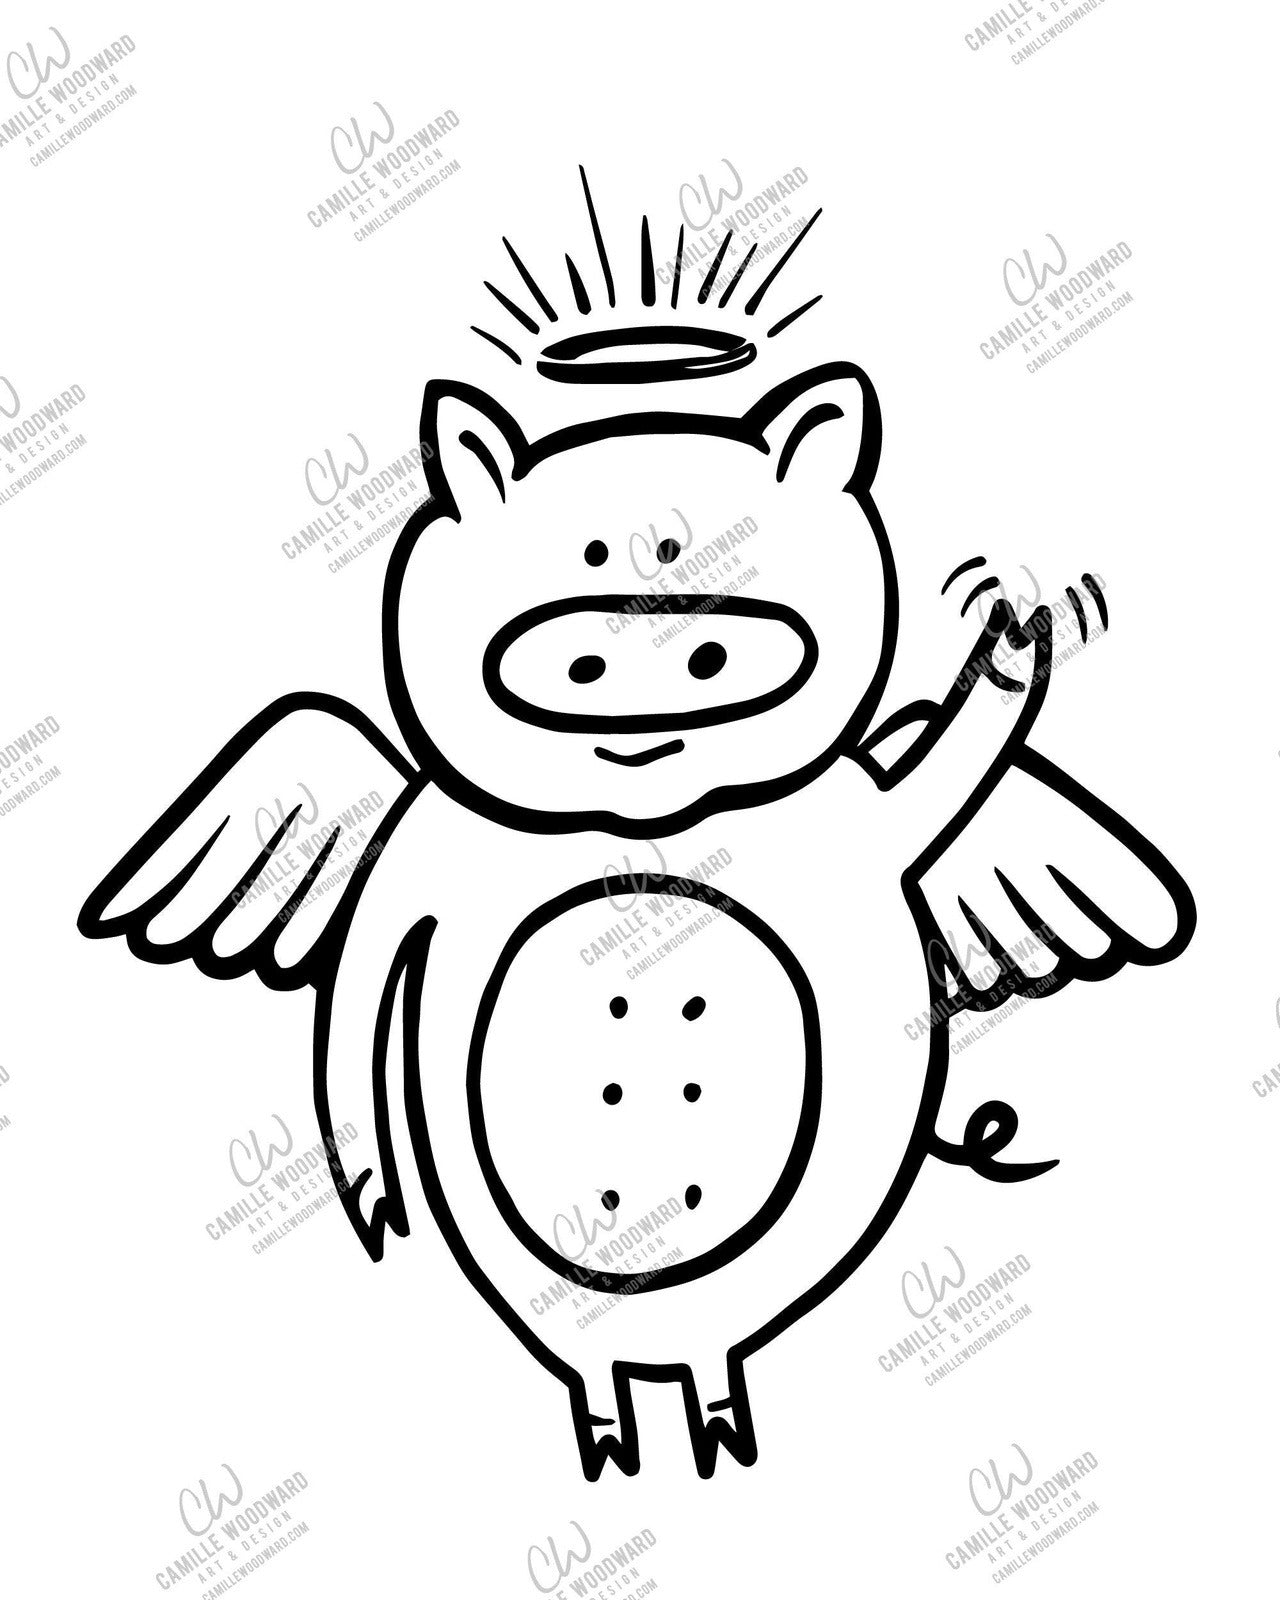 Divine Swine, Waving Pig with Wings and Halo - SVG Digital Download